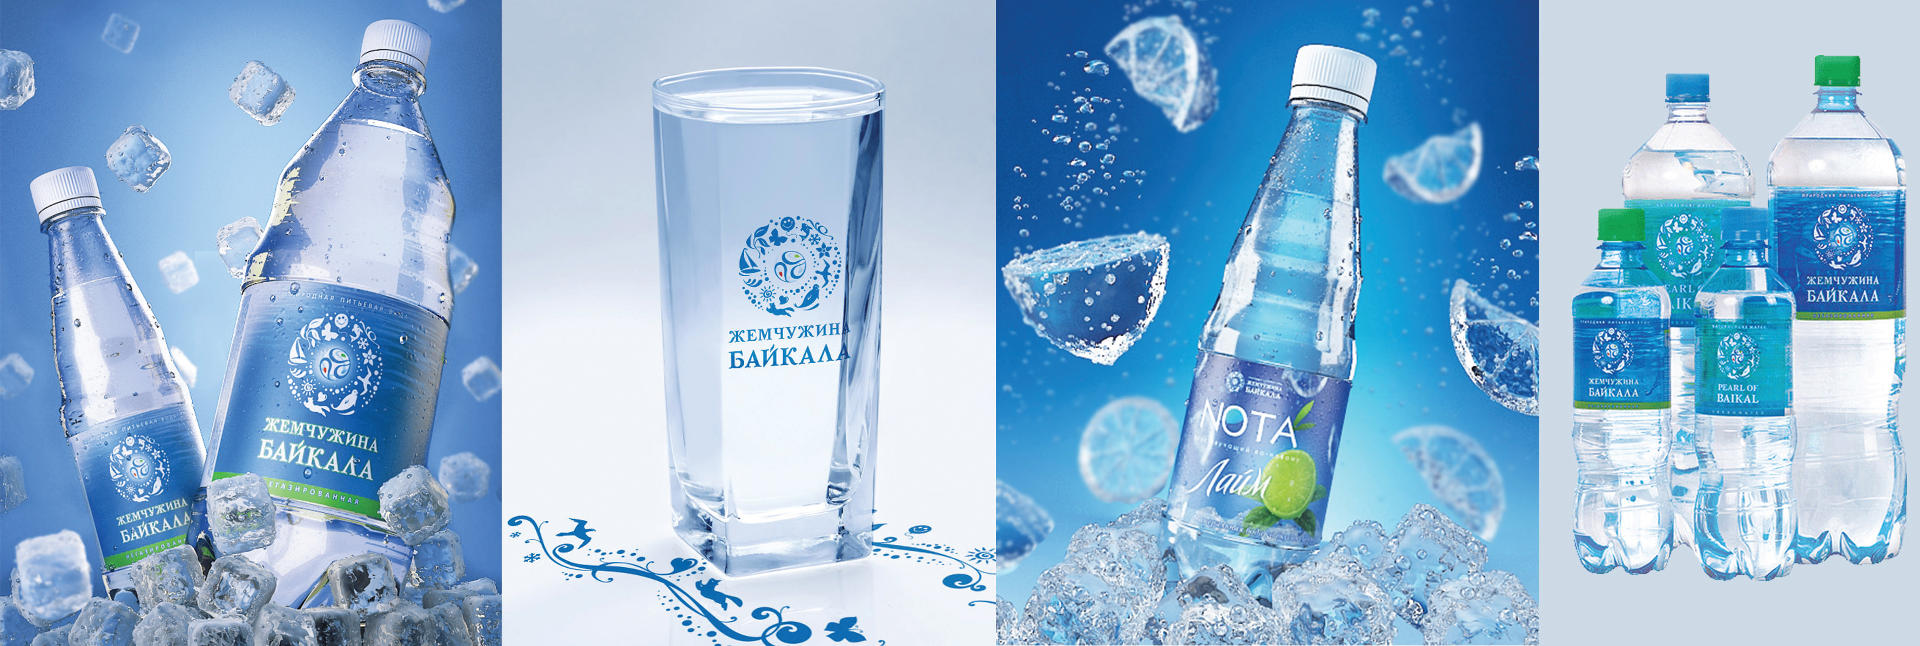 Mineral water label and logo design. Brand book.